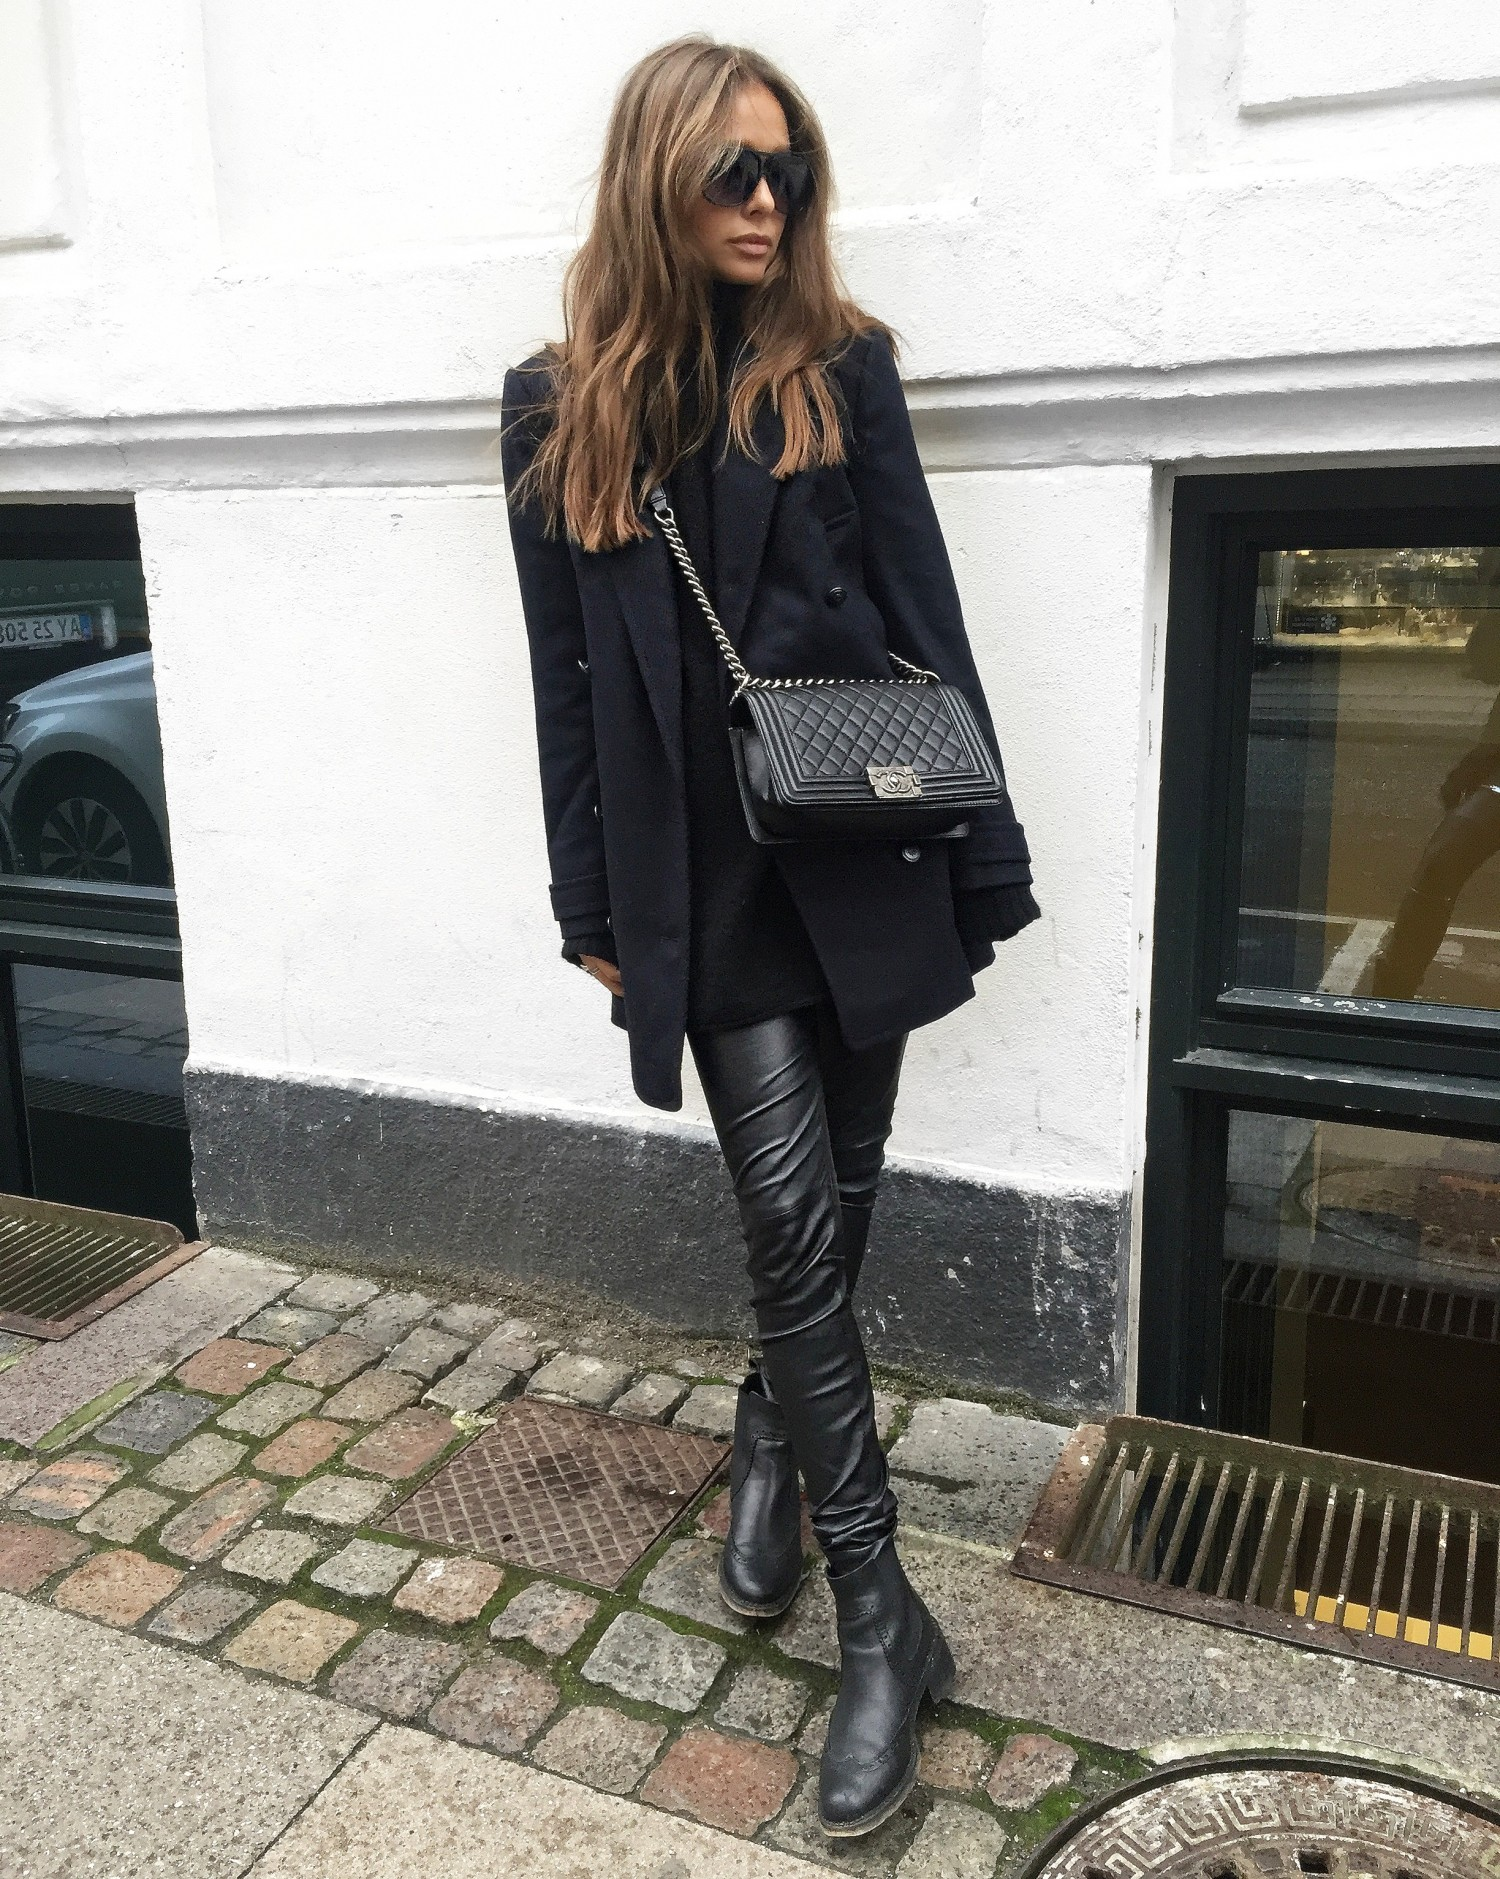 Leather leggings are the perfect choice for an all black look. Maria Kragmann wears a pair with gorgeous Chelsea boots and an oversized blazer from Pepe Jeans. Coat: Pepe Jeans, Trousers: Asos, Boots: Kurt Geiger, Bag: Chanel.